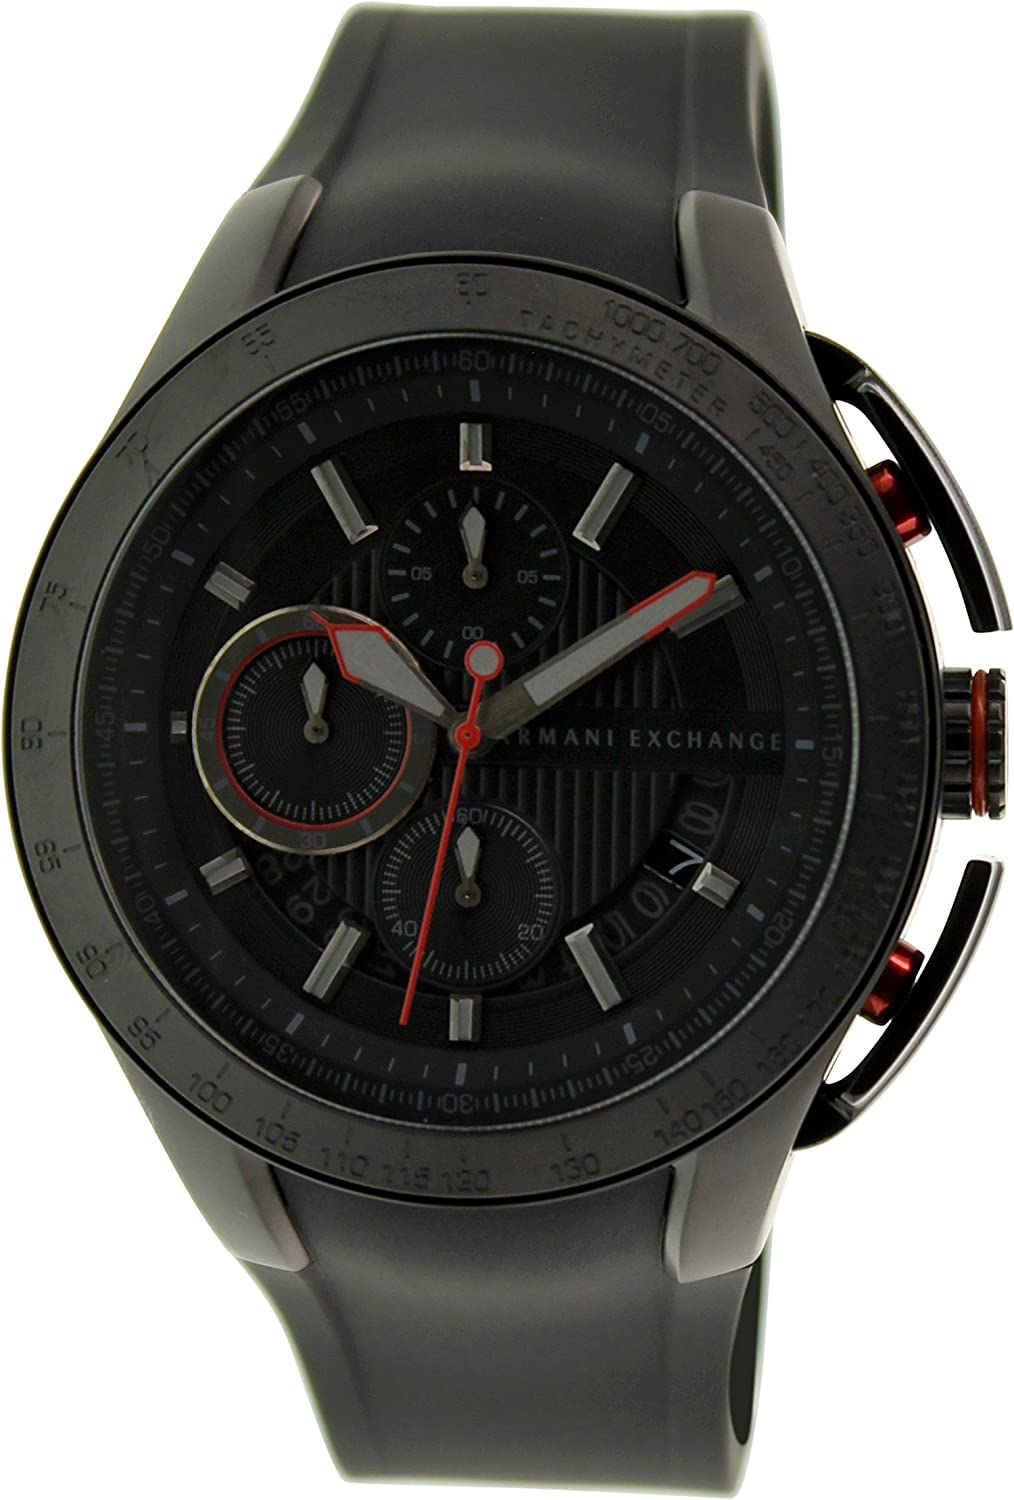 b54521fac01 Amazon.com  AX1401 Armani Exchange Black Silicone Chronograph Mens Watch  Armani  Exchange  Watches